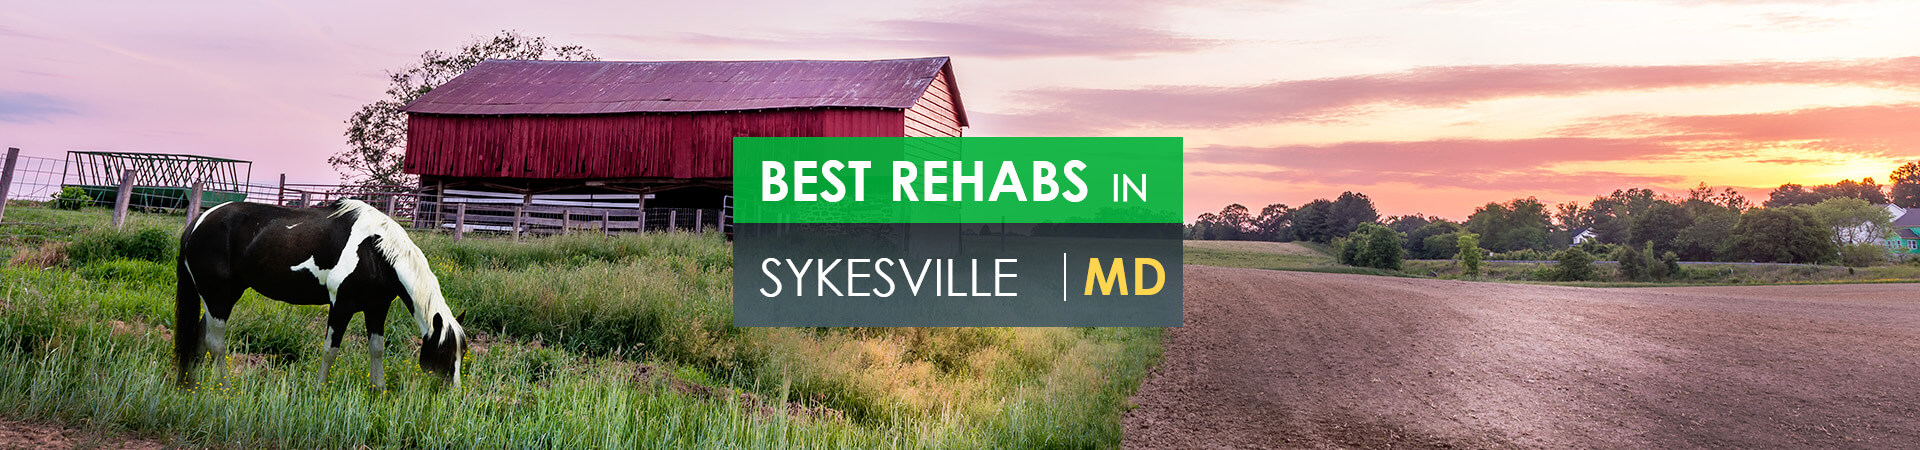 Best rehabs in Sykesville, MD